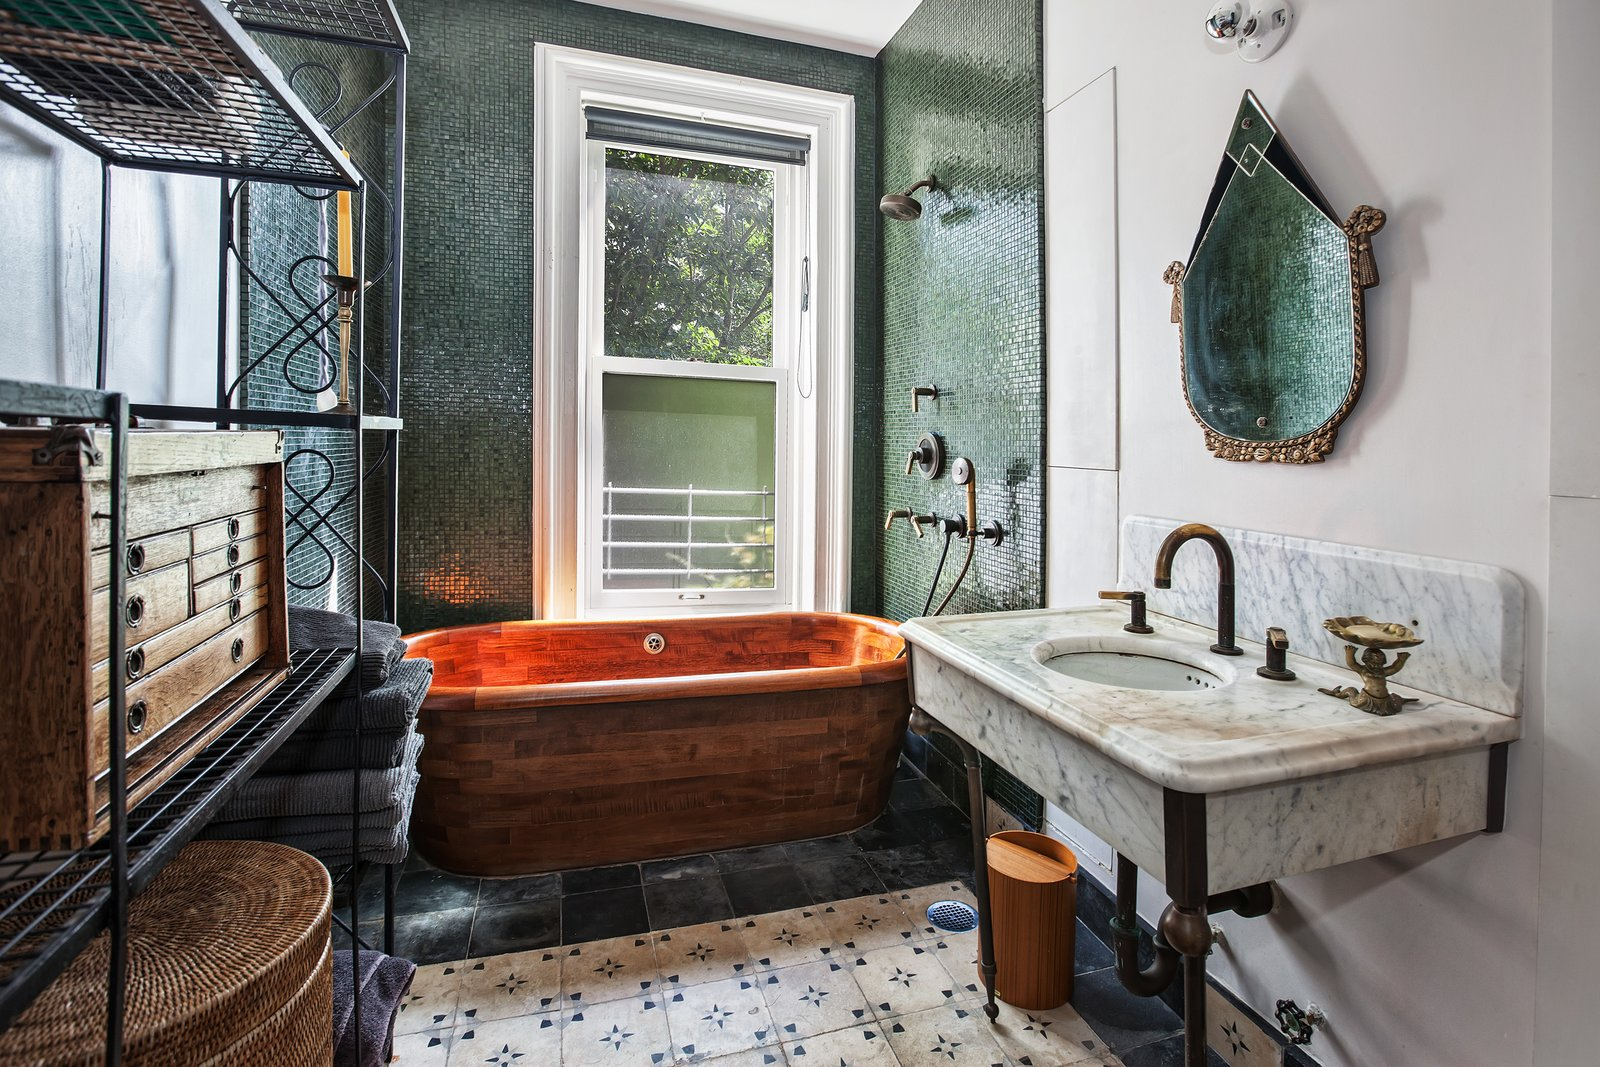 Maggie Gyllenhaal and Peter Sarsgaard's Park Slope Townhouse master bath